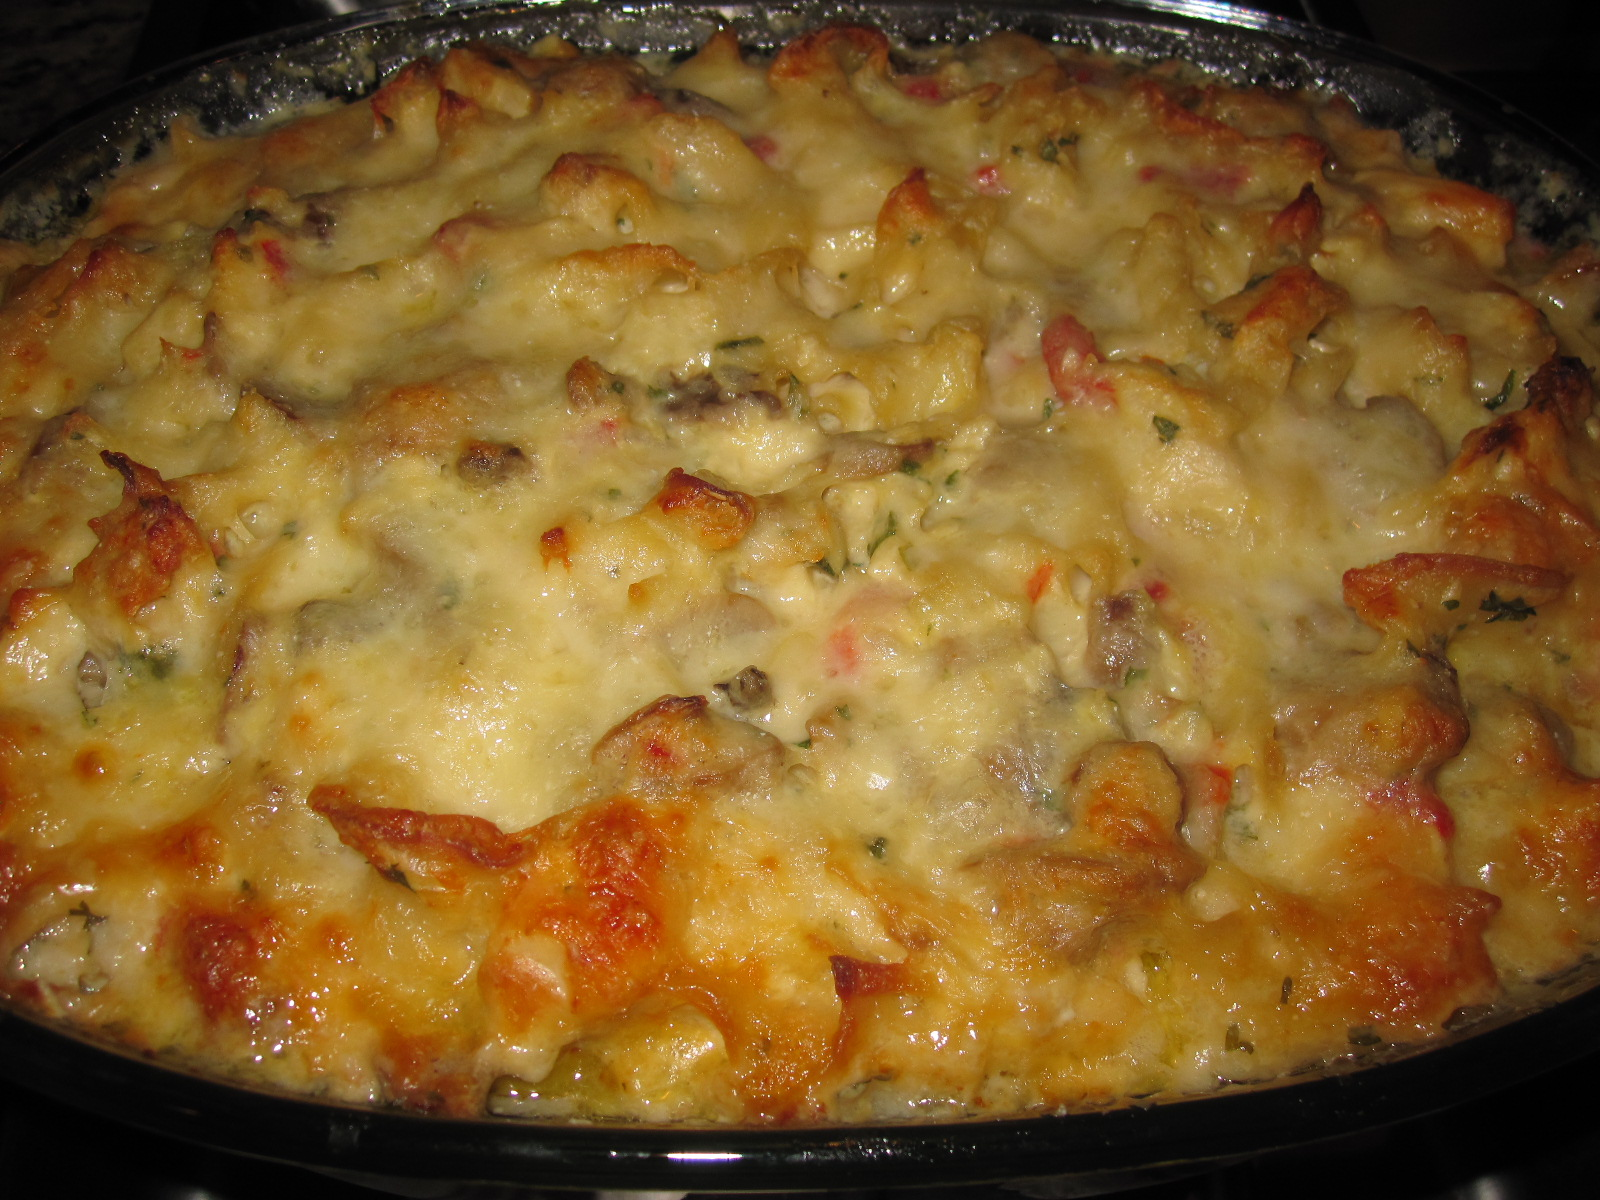 Creative Hospitality: Turkey (or Chicken) Noodle Casserole